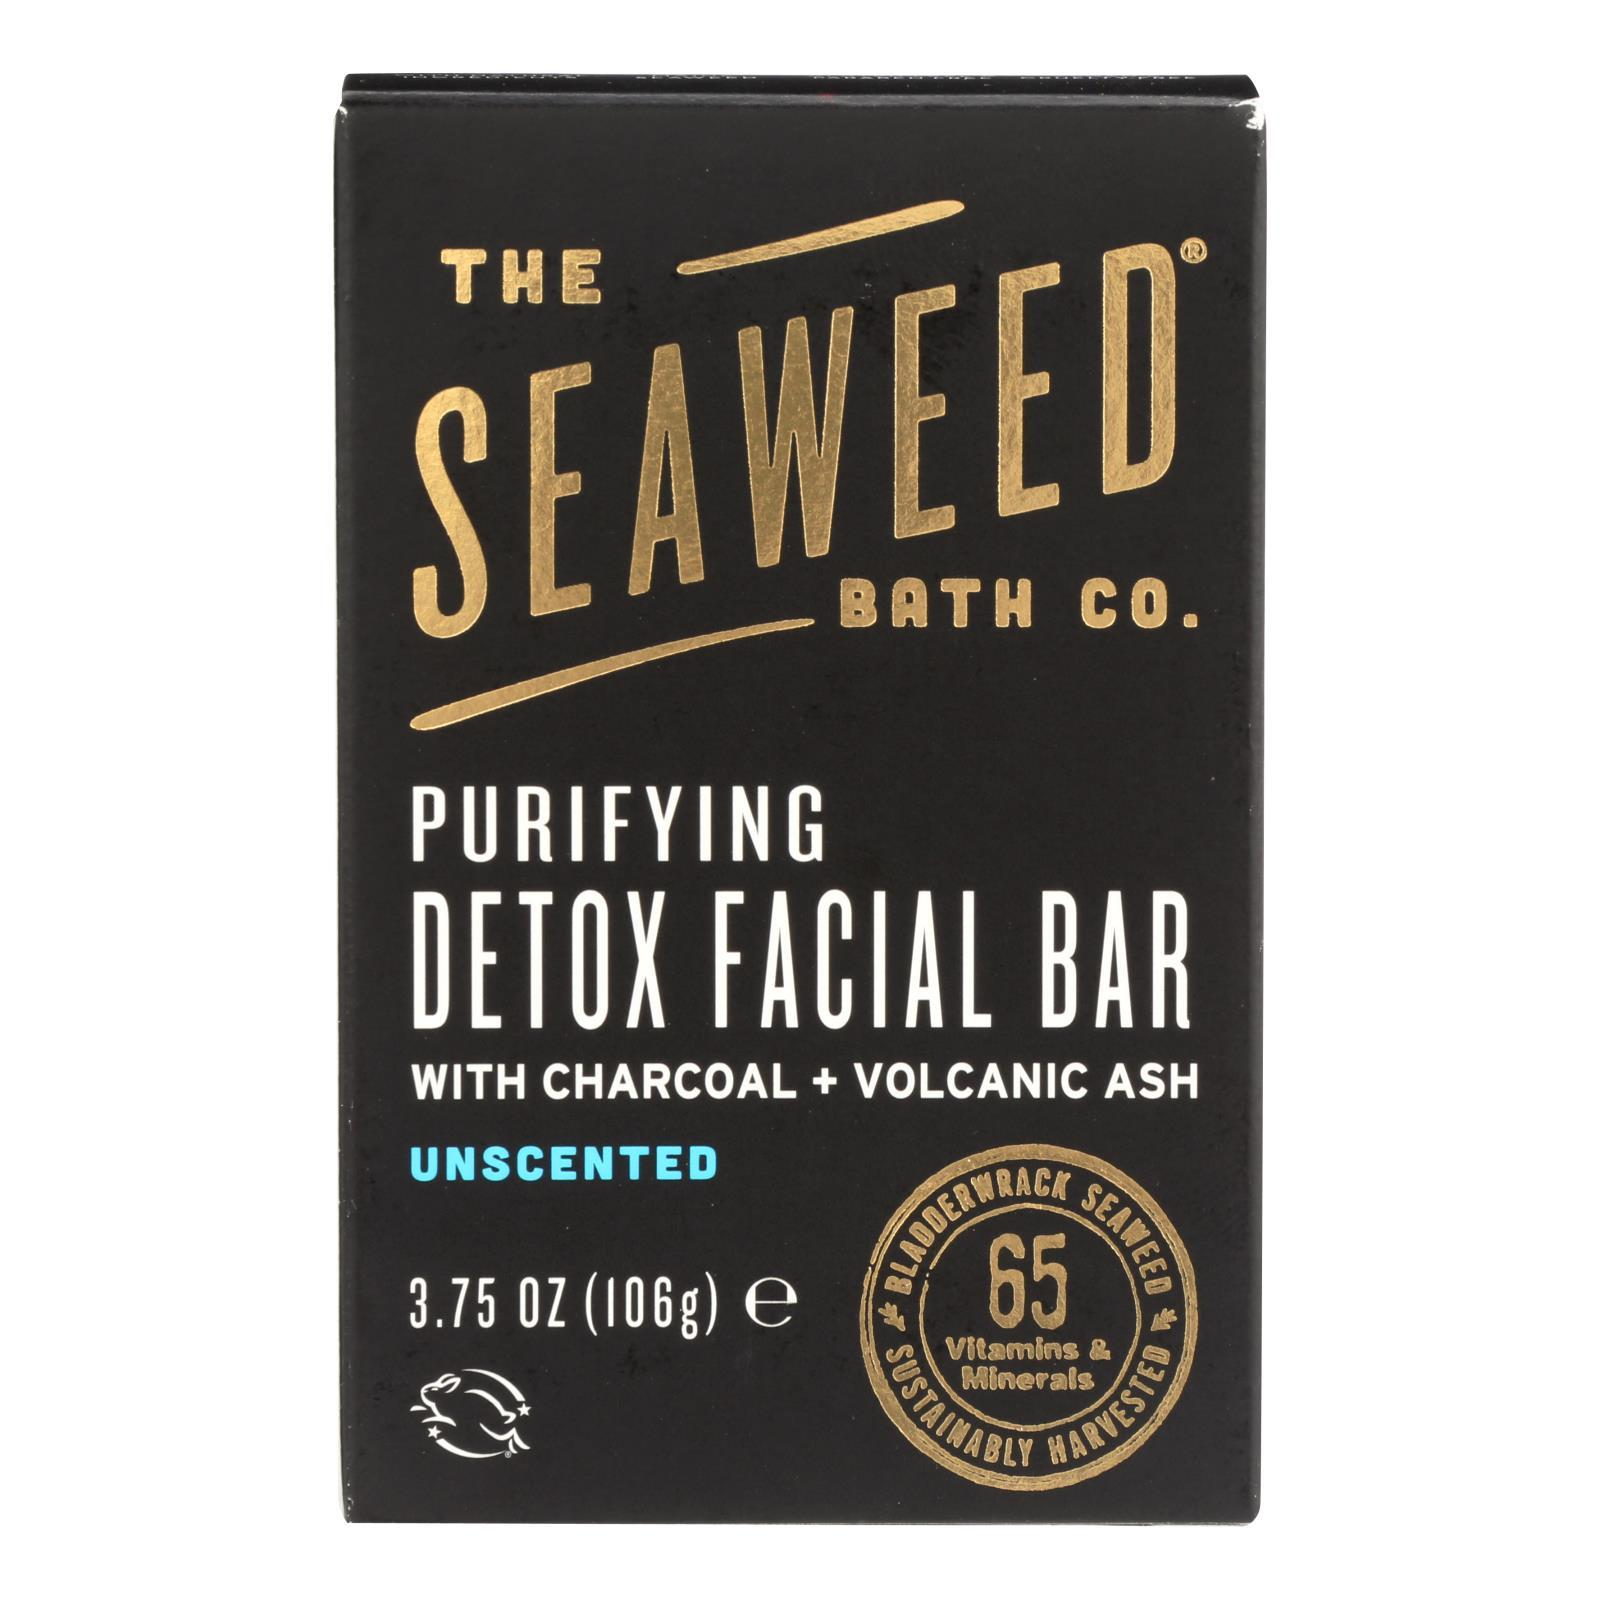 The Seaweed Bath Co Soap - Bar - Detox - Facial - 3.75 Oz - BeeGreen